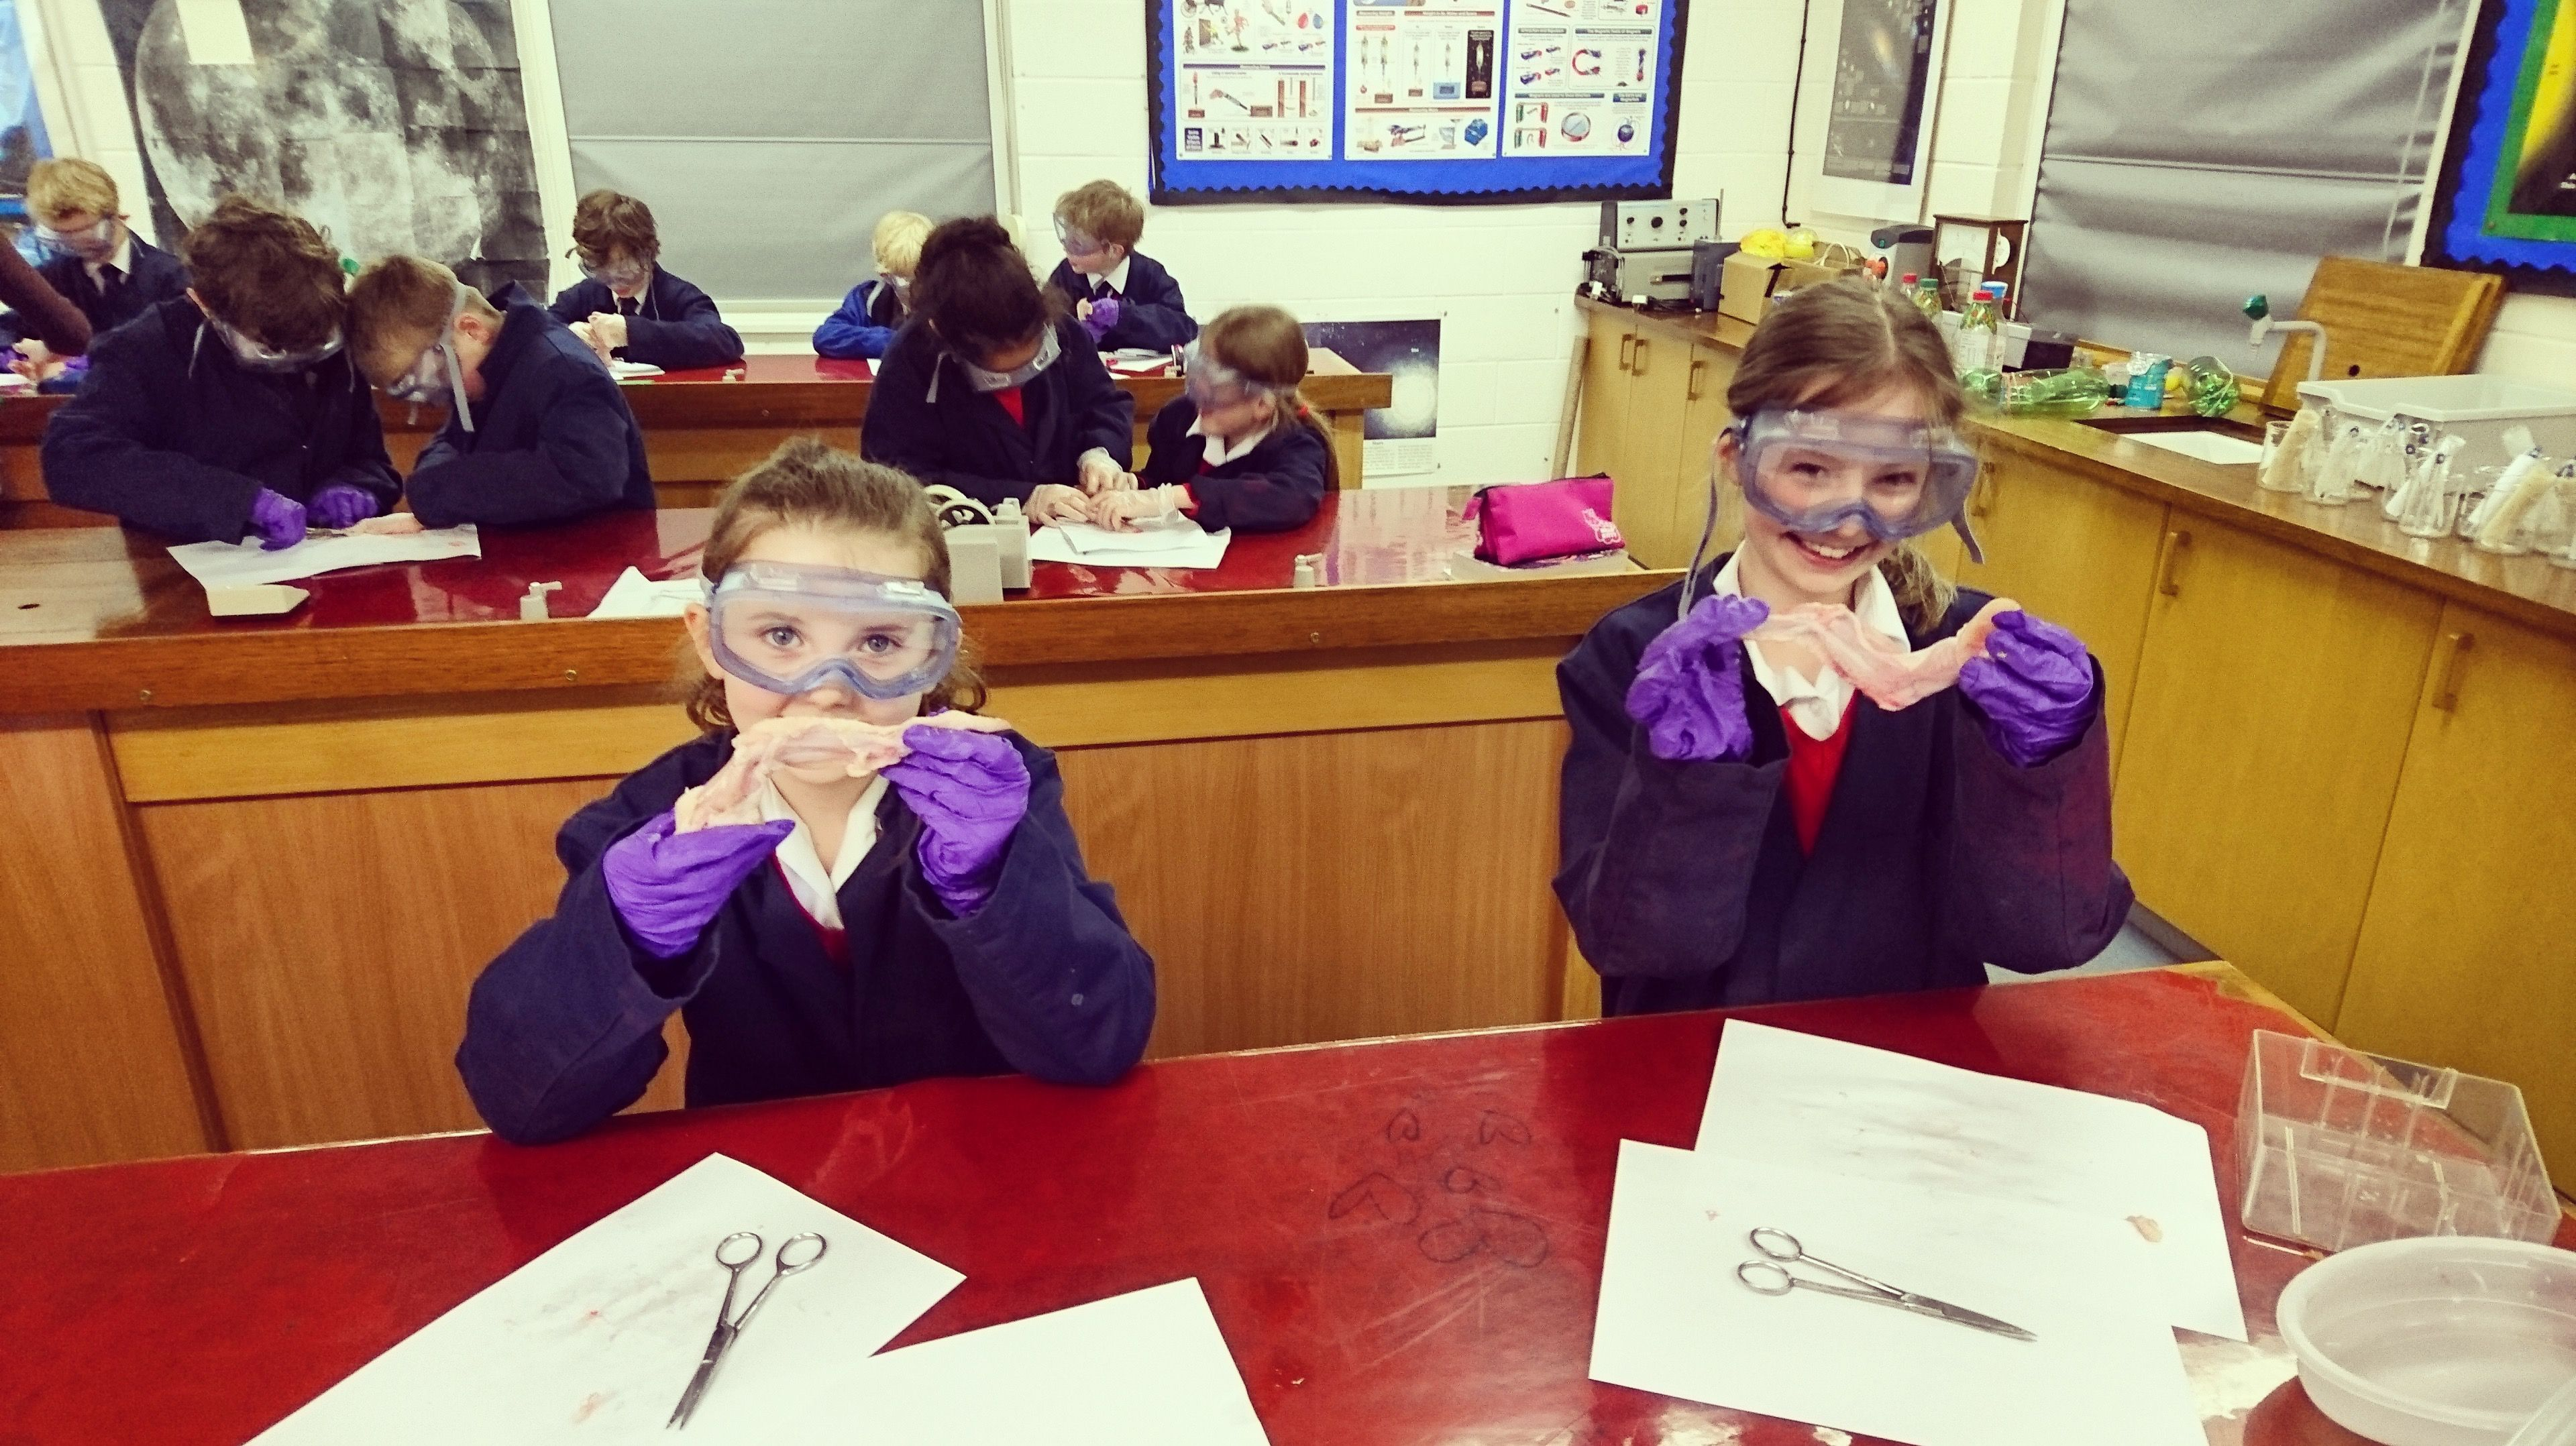 Year 4 girls catching up on a chicken wing dissection practical ...